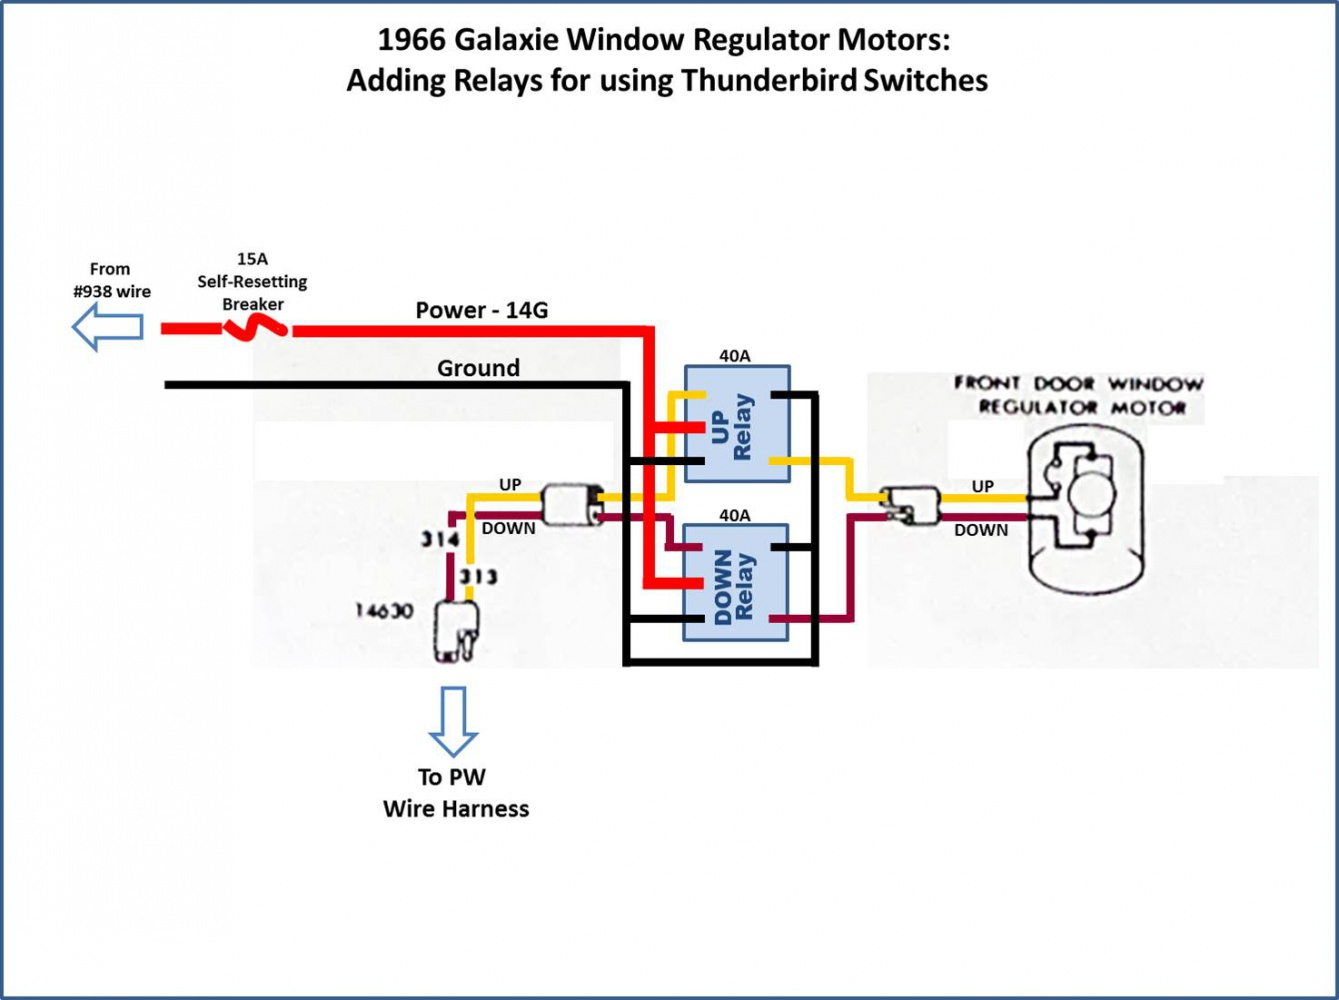 Electric Window Wiring Diagram Mazda 3 | Wiring Diagram - Power Window Switch Wiring Diagram